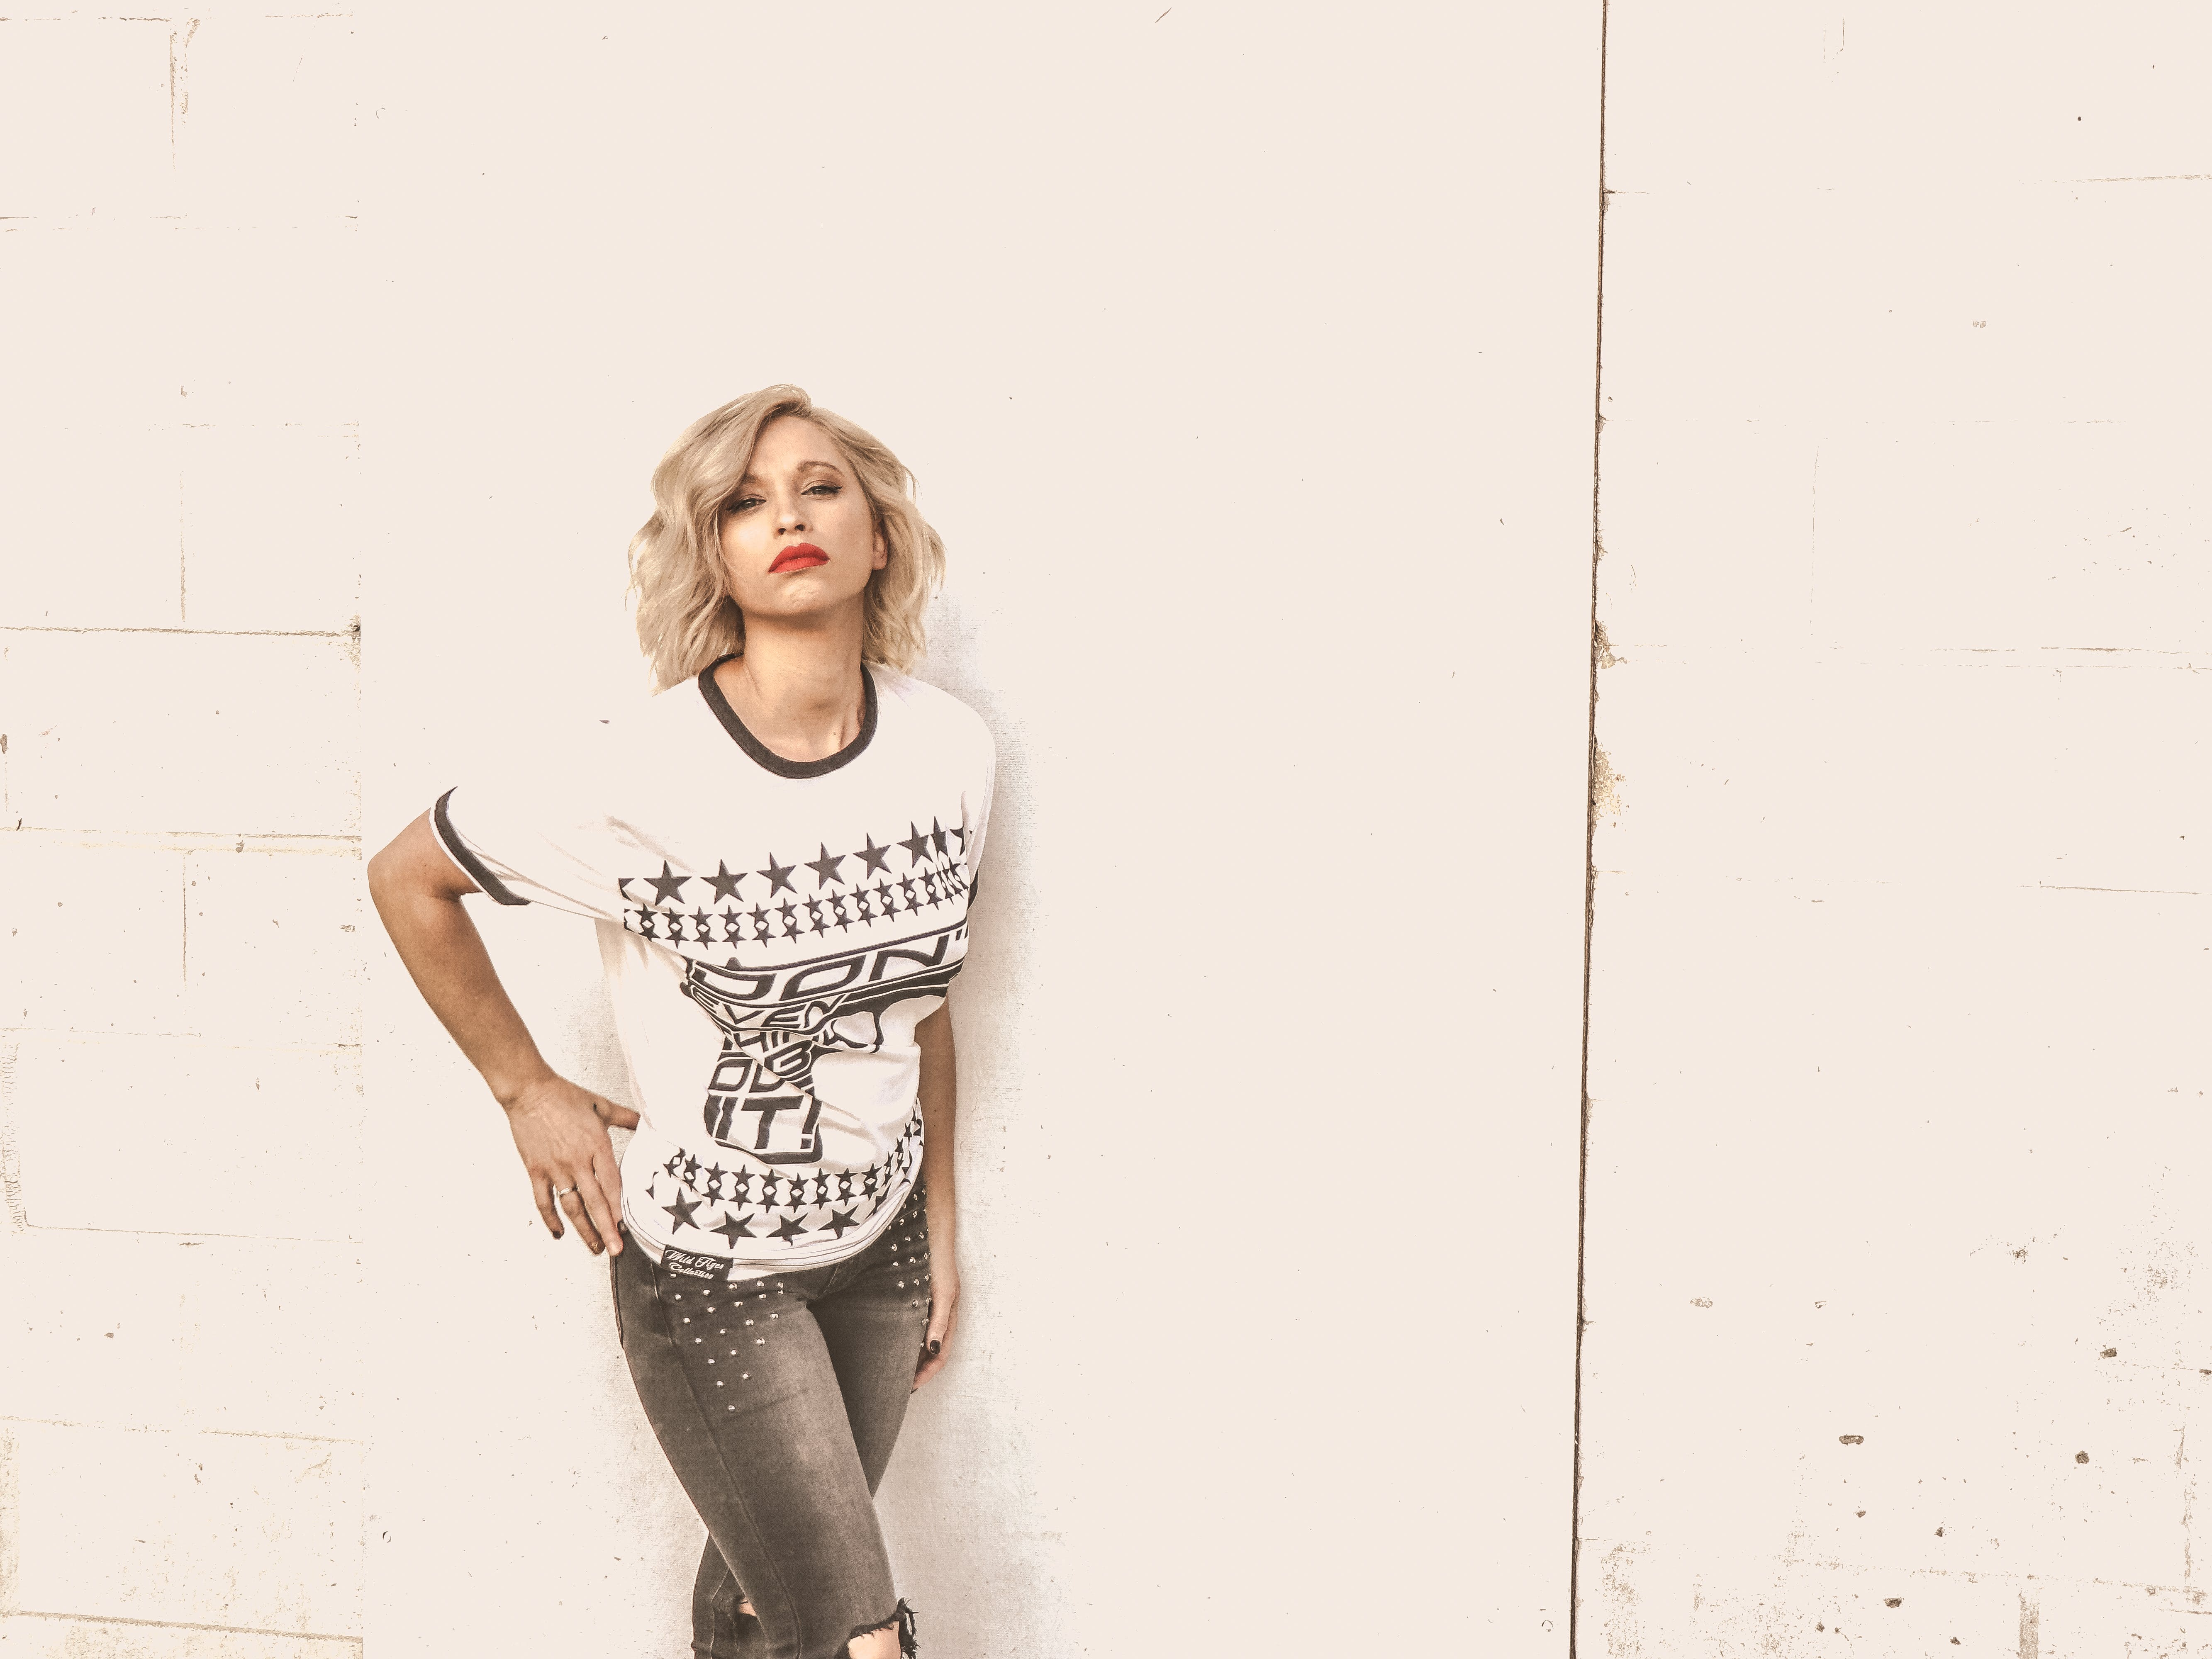 Woman With Blond Hair Wearing Whit Crew Neck Shirt and Gray Jeans